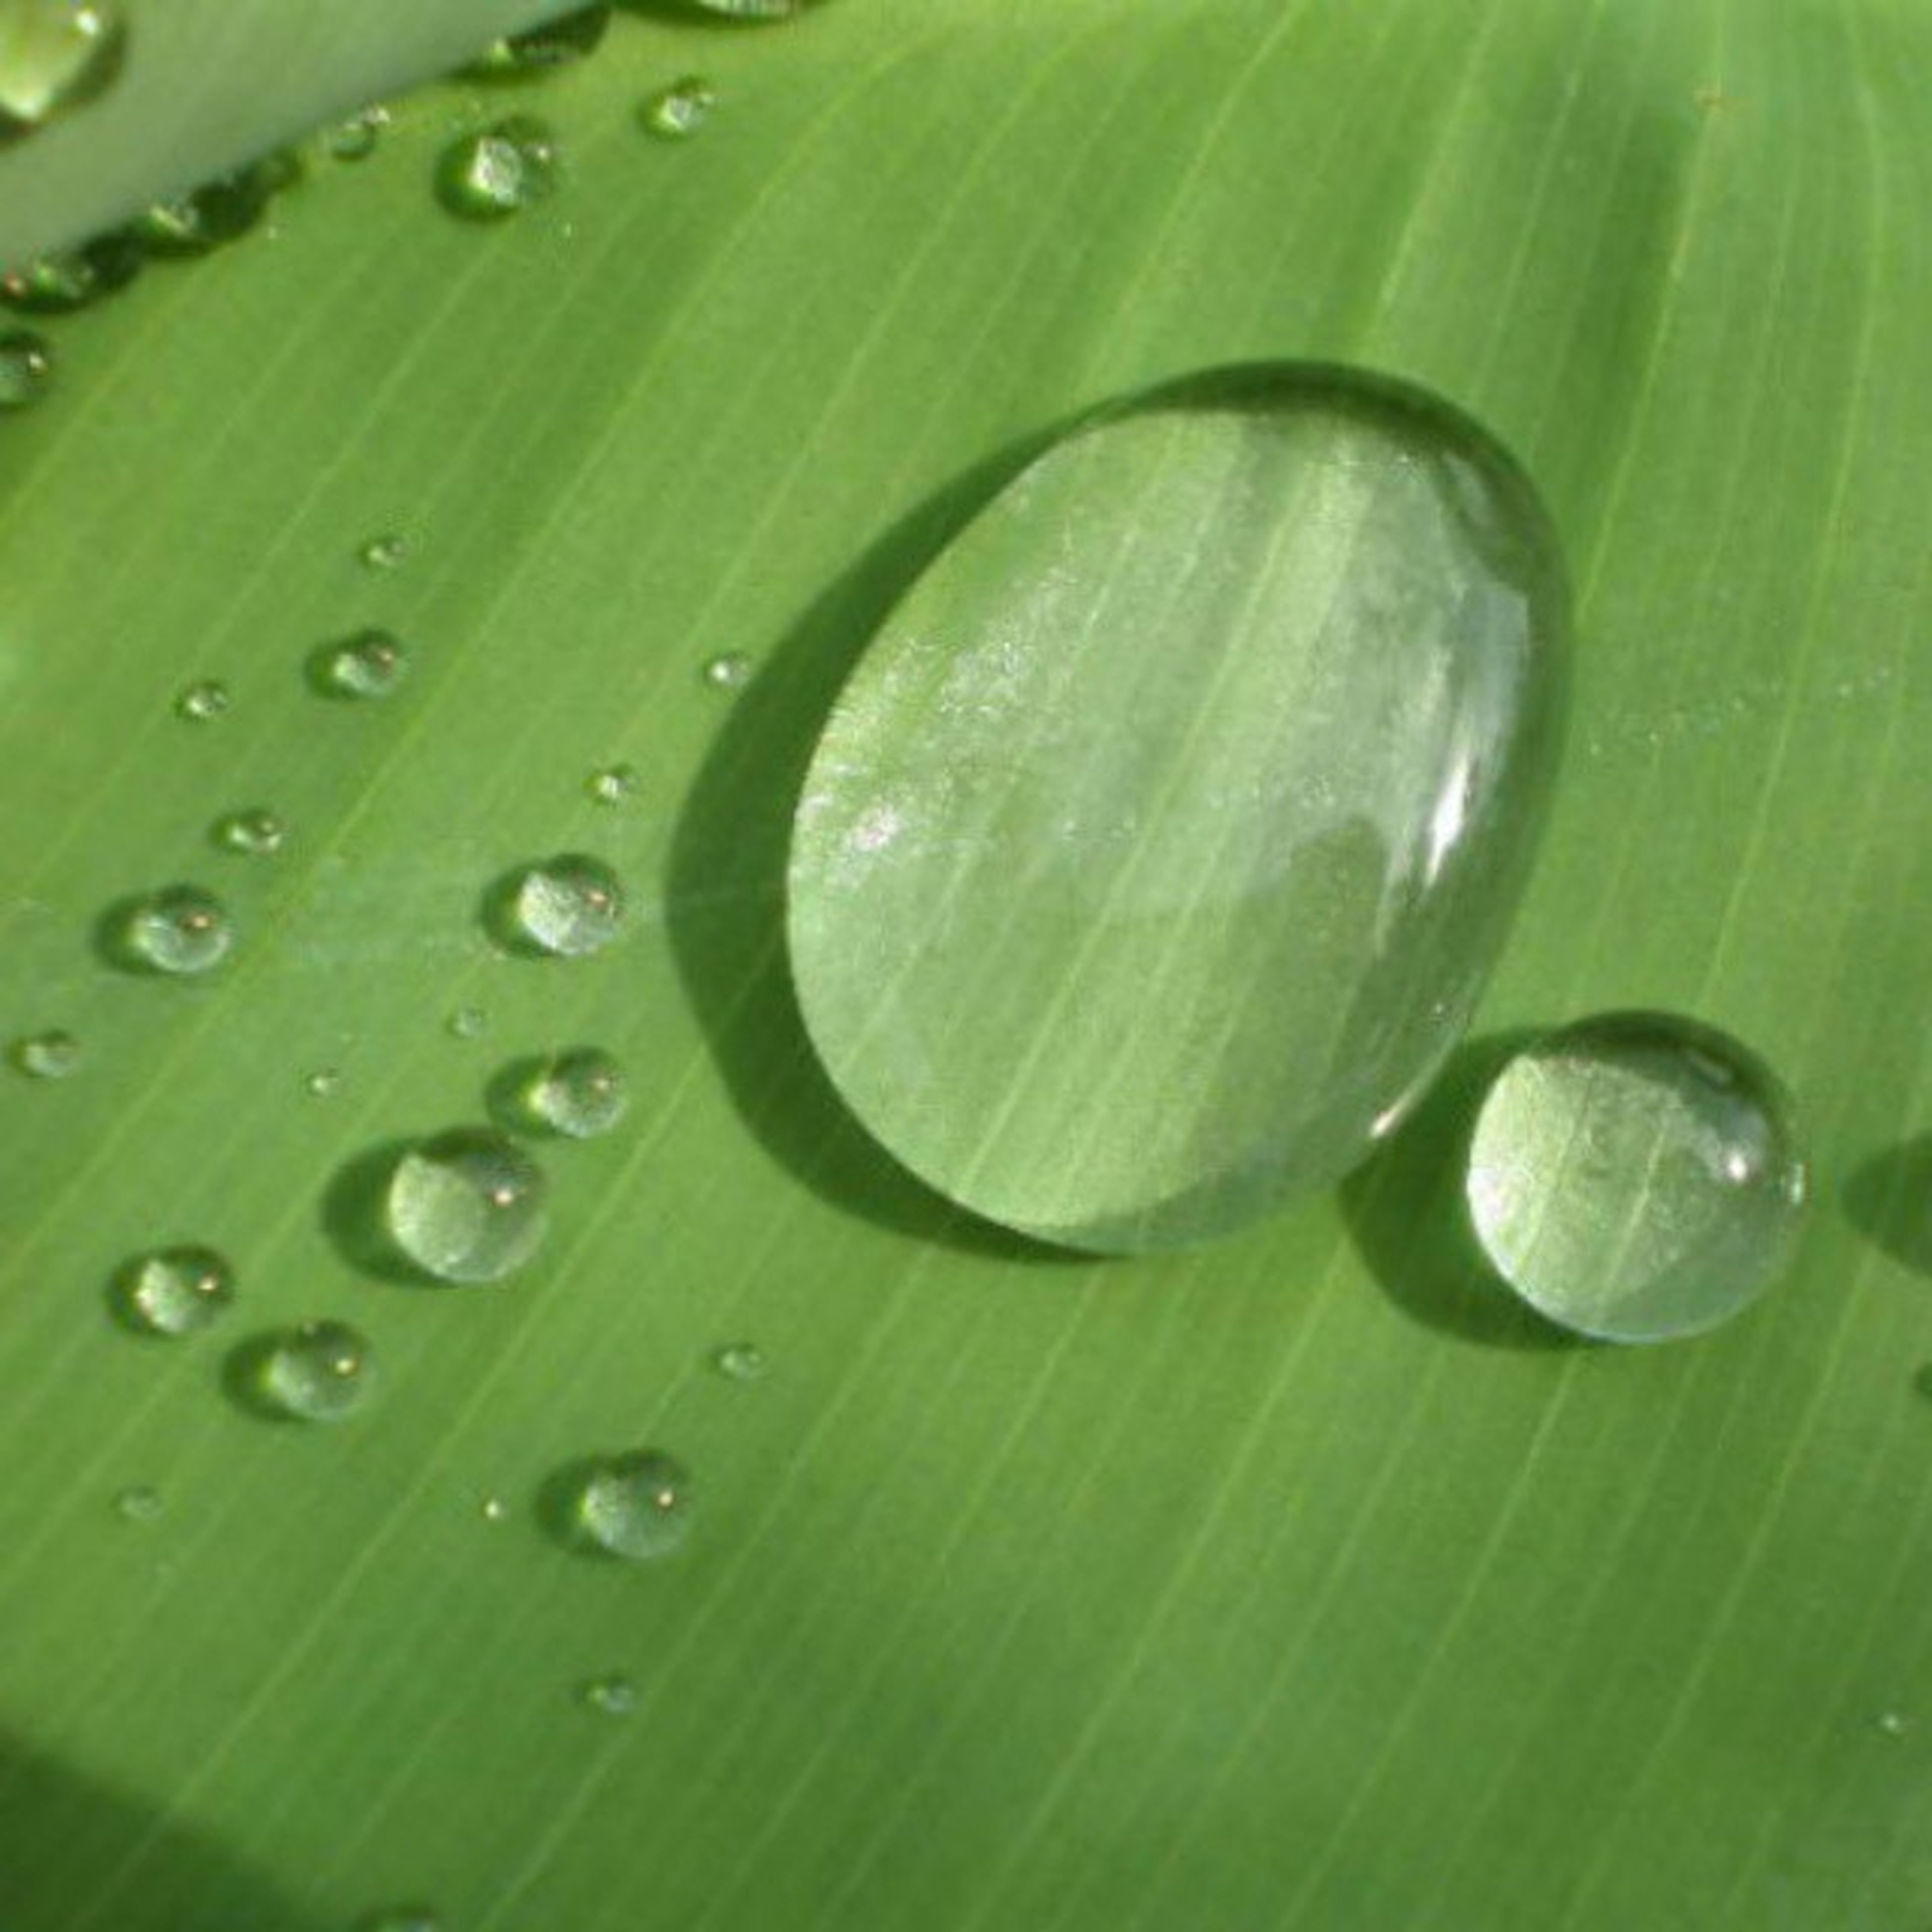 green color, drop, leaf, close-up, freshness, growth, water, nature, wet, beauty in nature, leaf vein, natural pattern, fragility, dew, green, plant, full frame, day, focus on foreground, no people